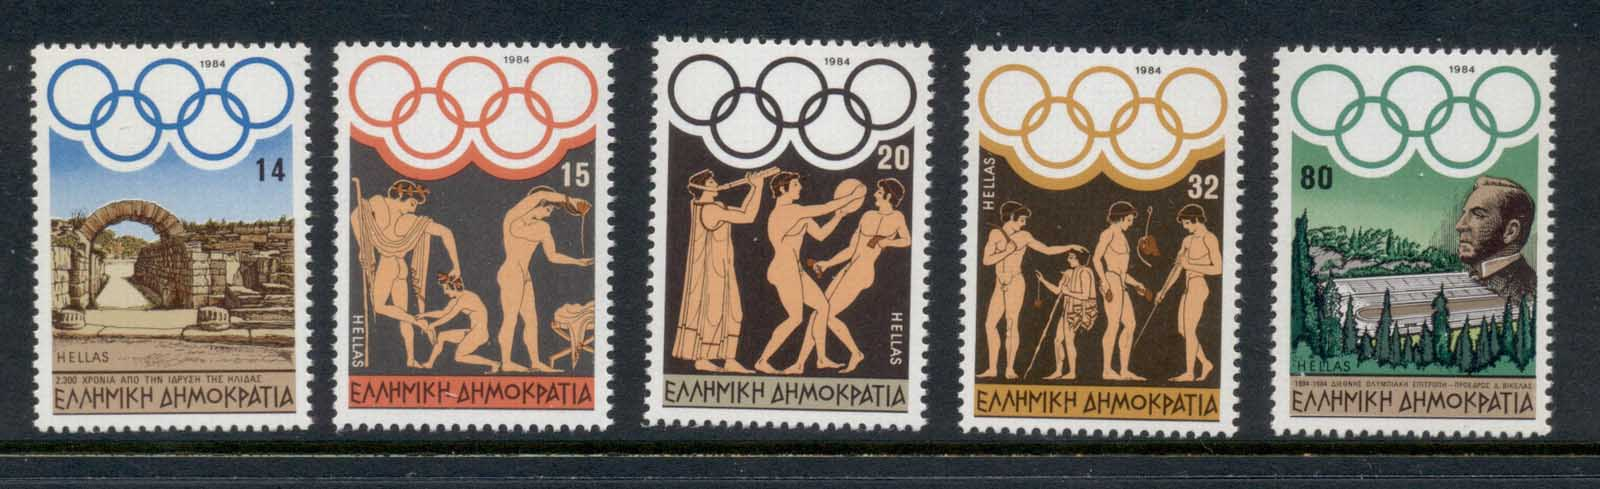 Greece 1984 Summer Olympics MUH